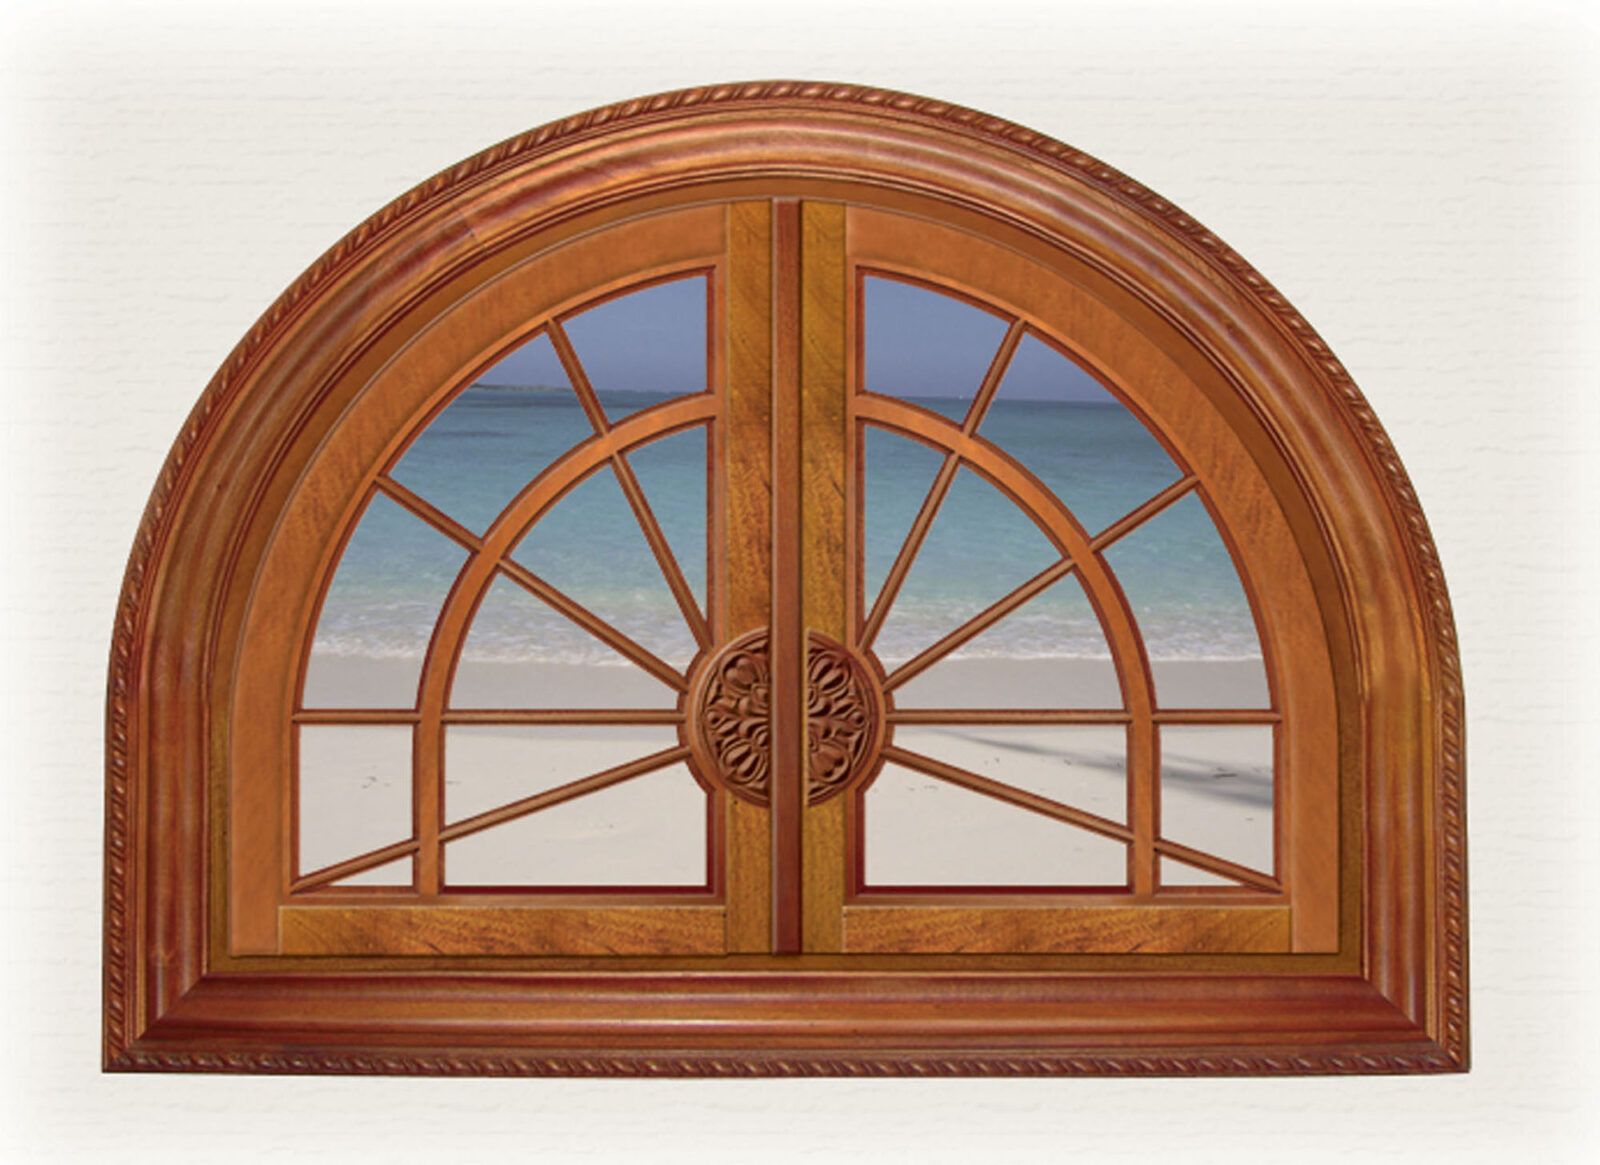 SOMERSET FIXED ARCHED WINDOW